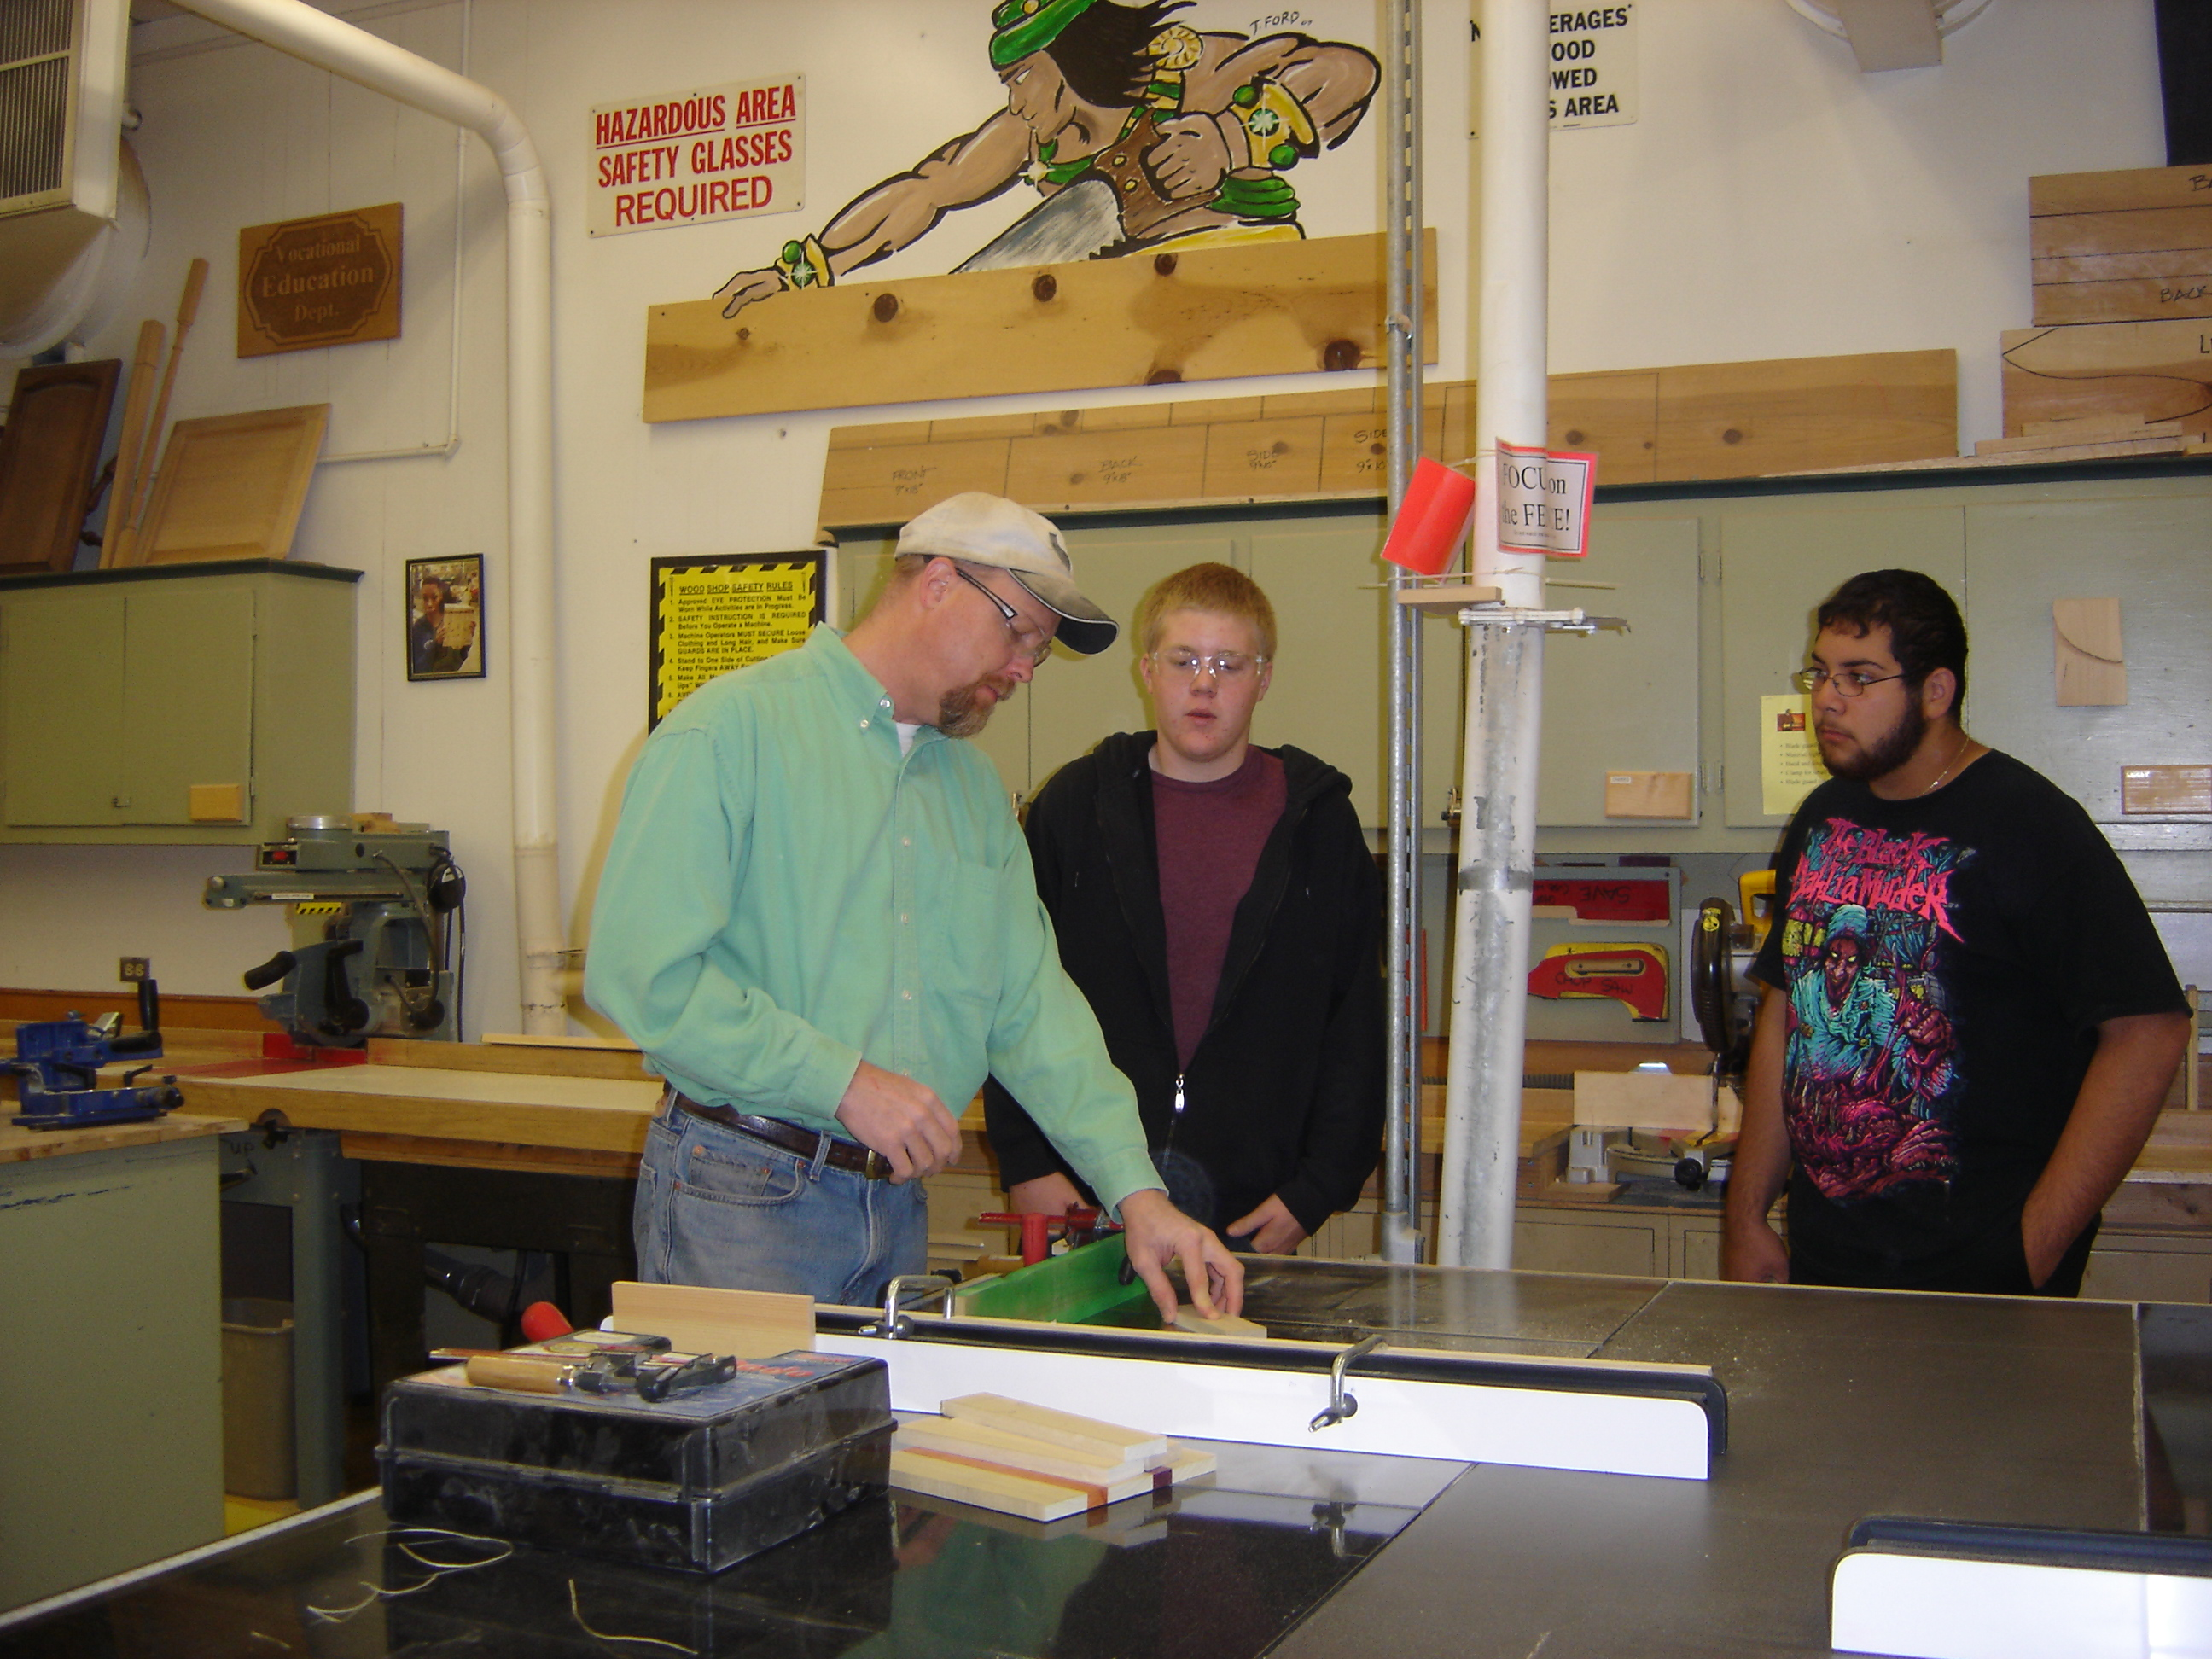 Mr. S advises on the table saw